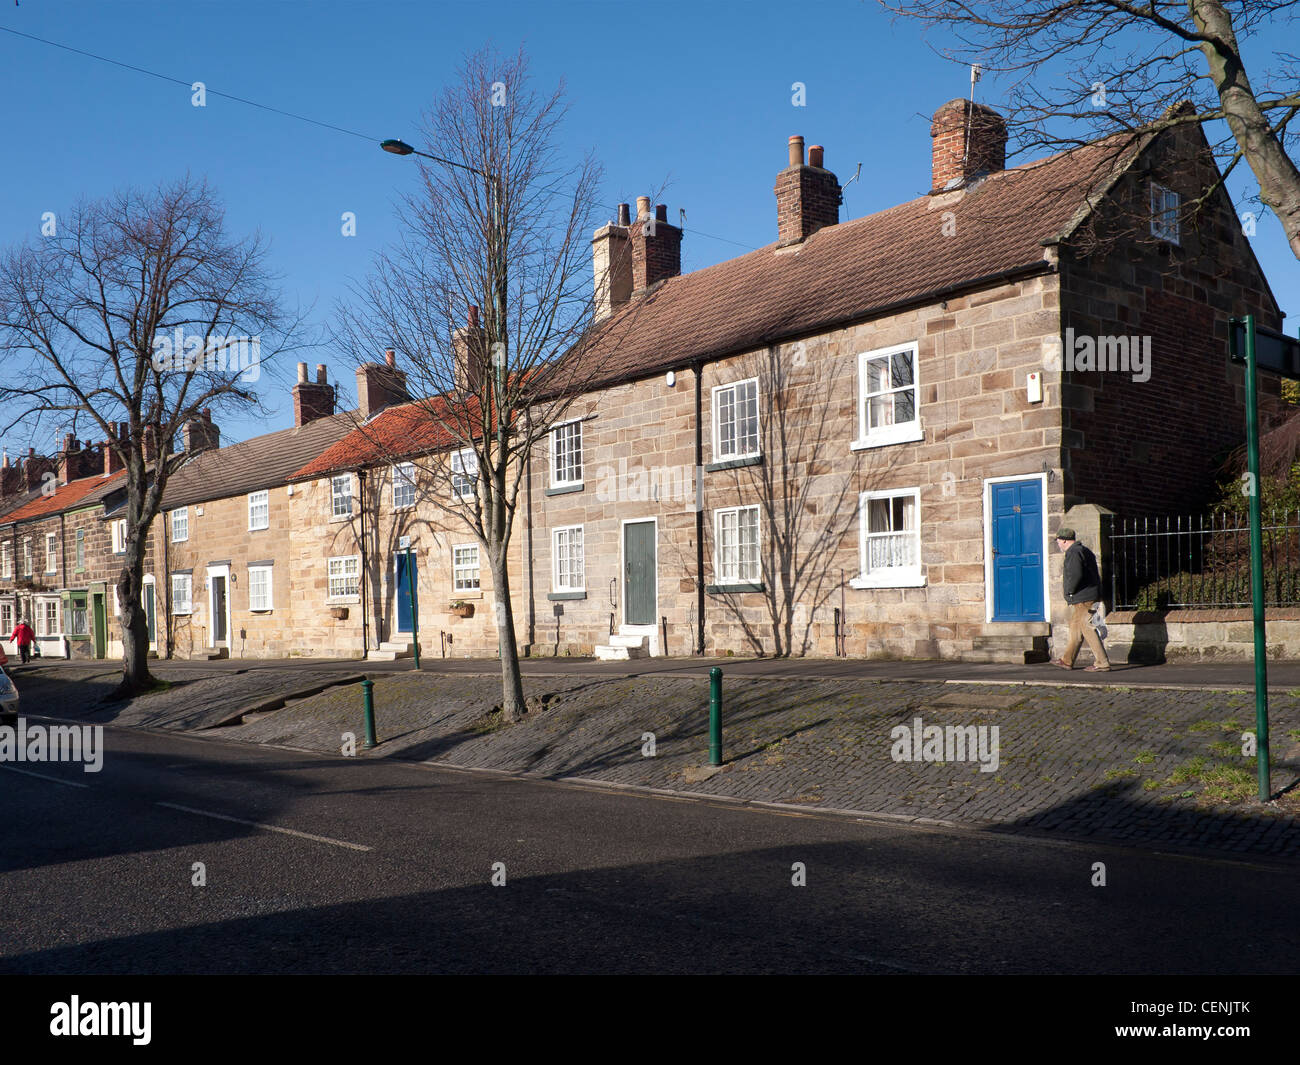 A row of substantial well built stone terraced houses in Guisborough North Yorkshire - Stock Image